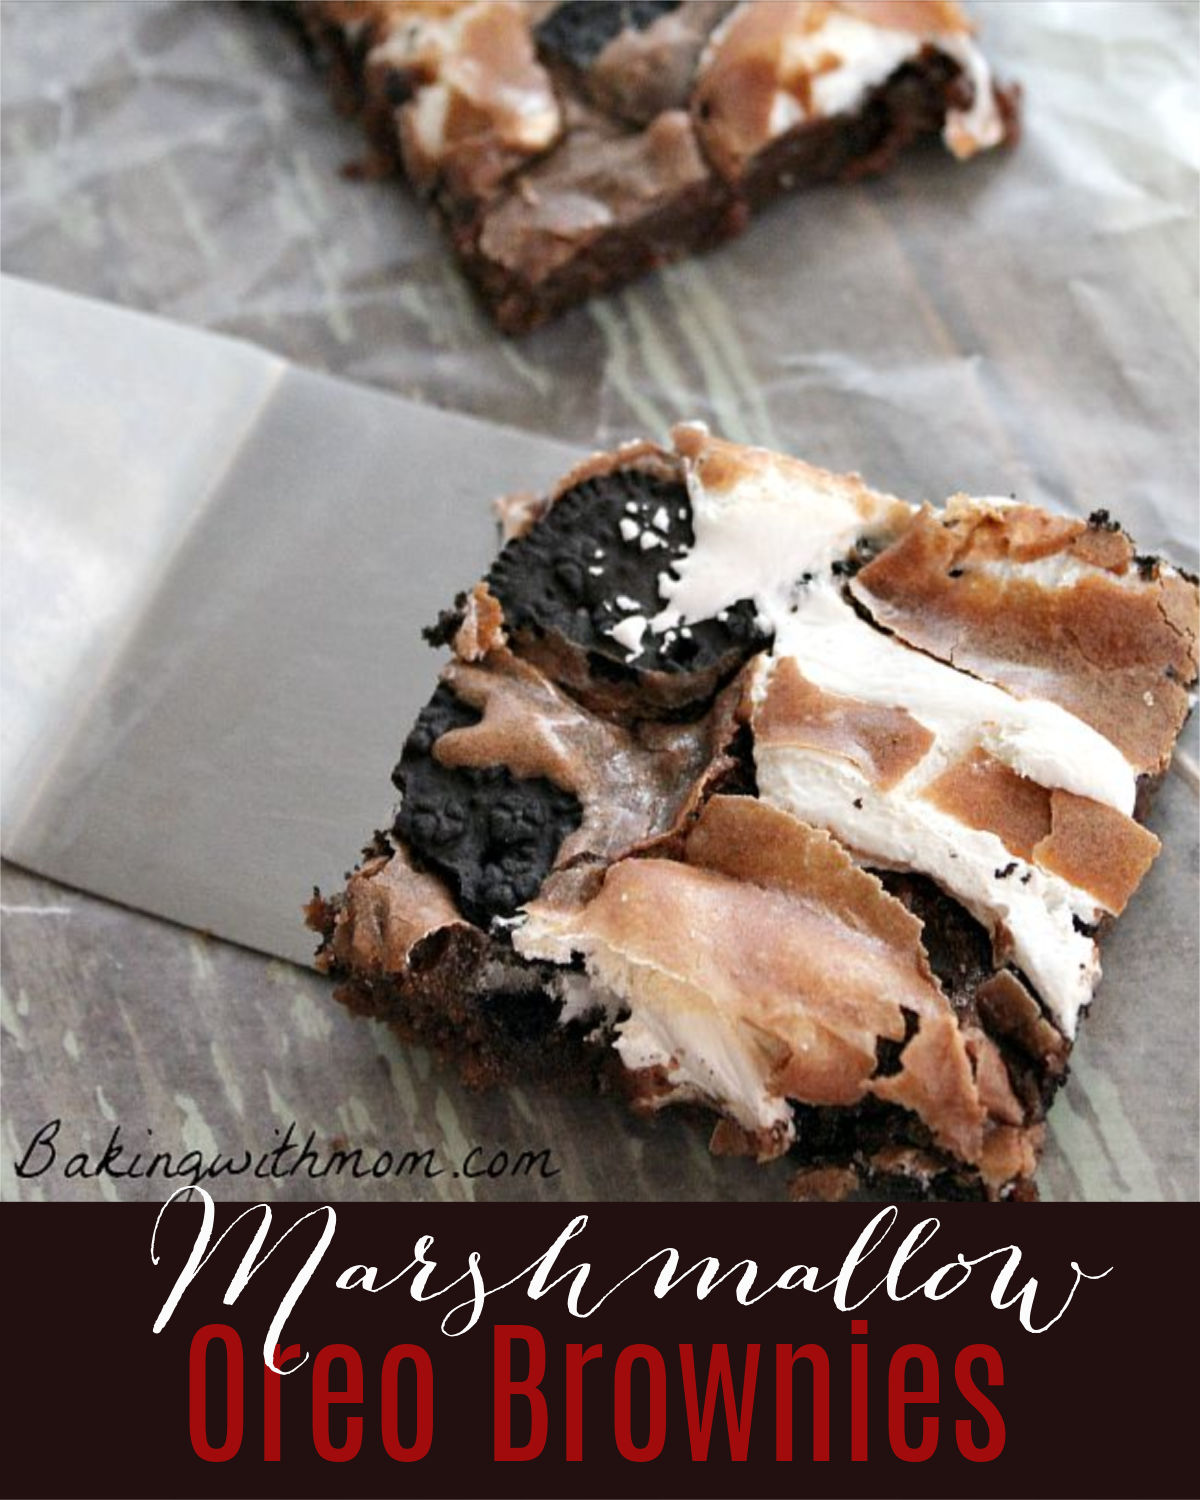 Spatula holding a chocolate brownie with marshmallow swirled within.